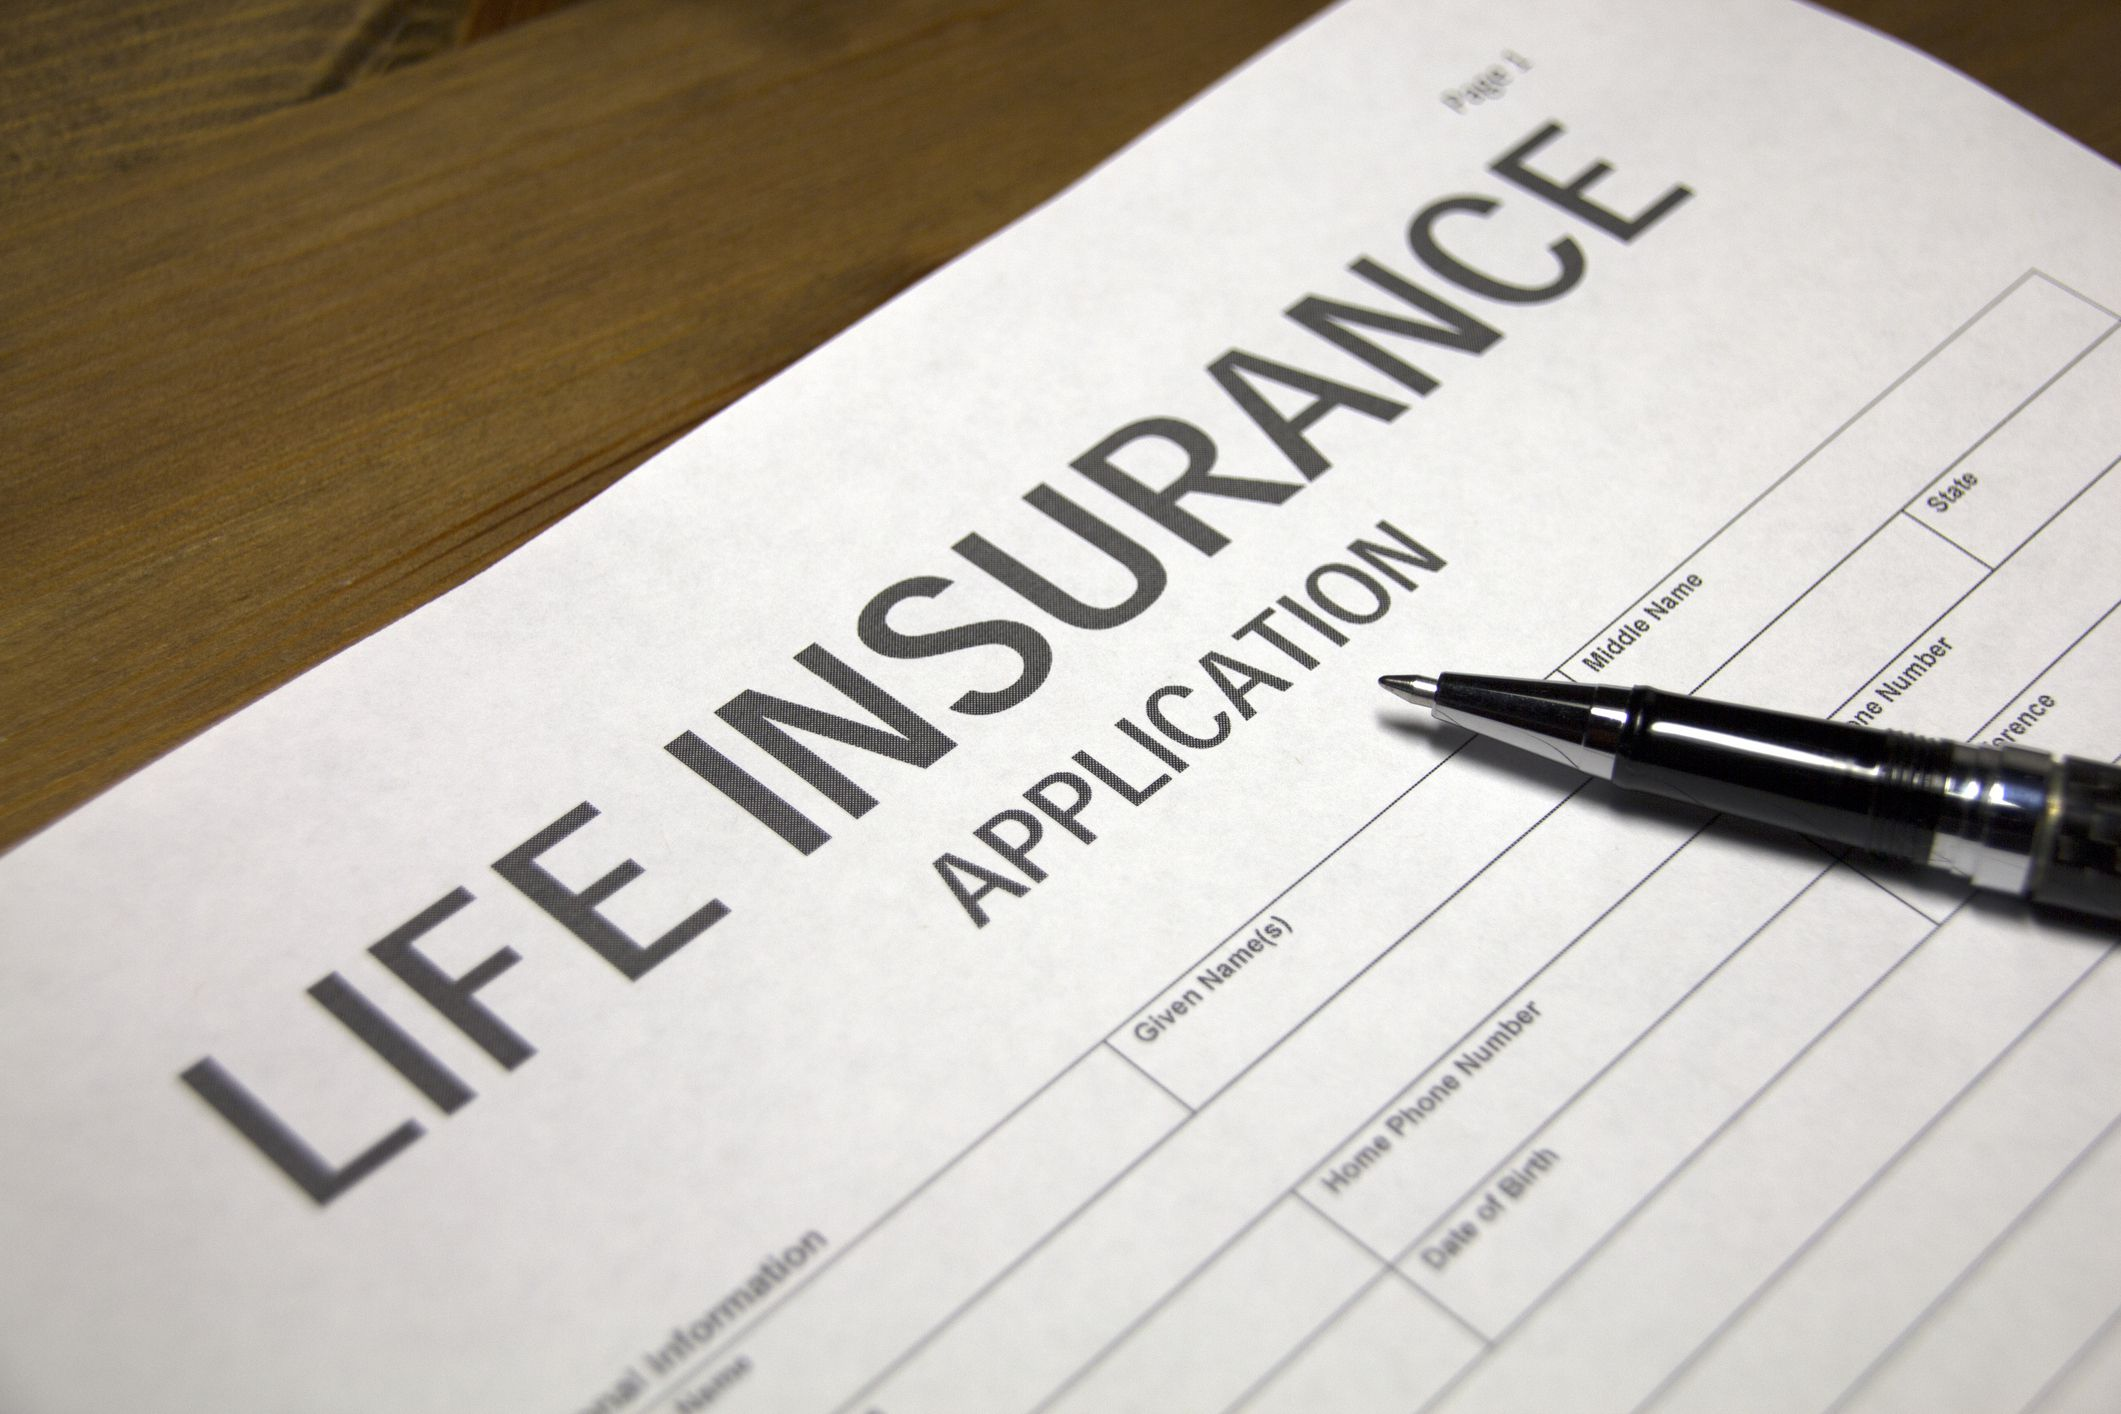 Cheap Term Life Insurance Quote - How to Find the Best Term Life Insurance Policy